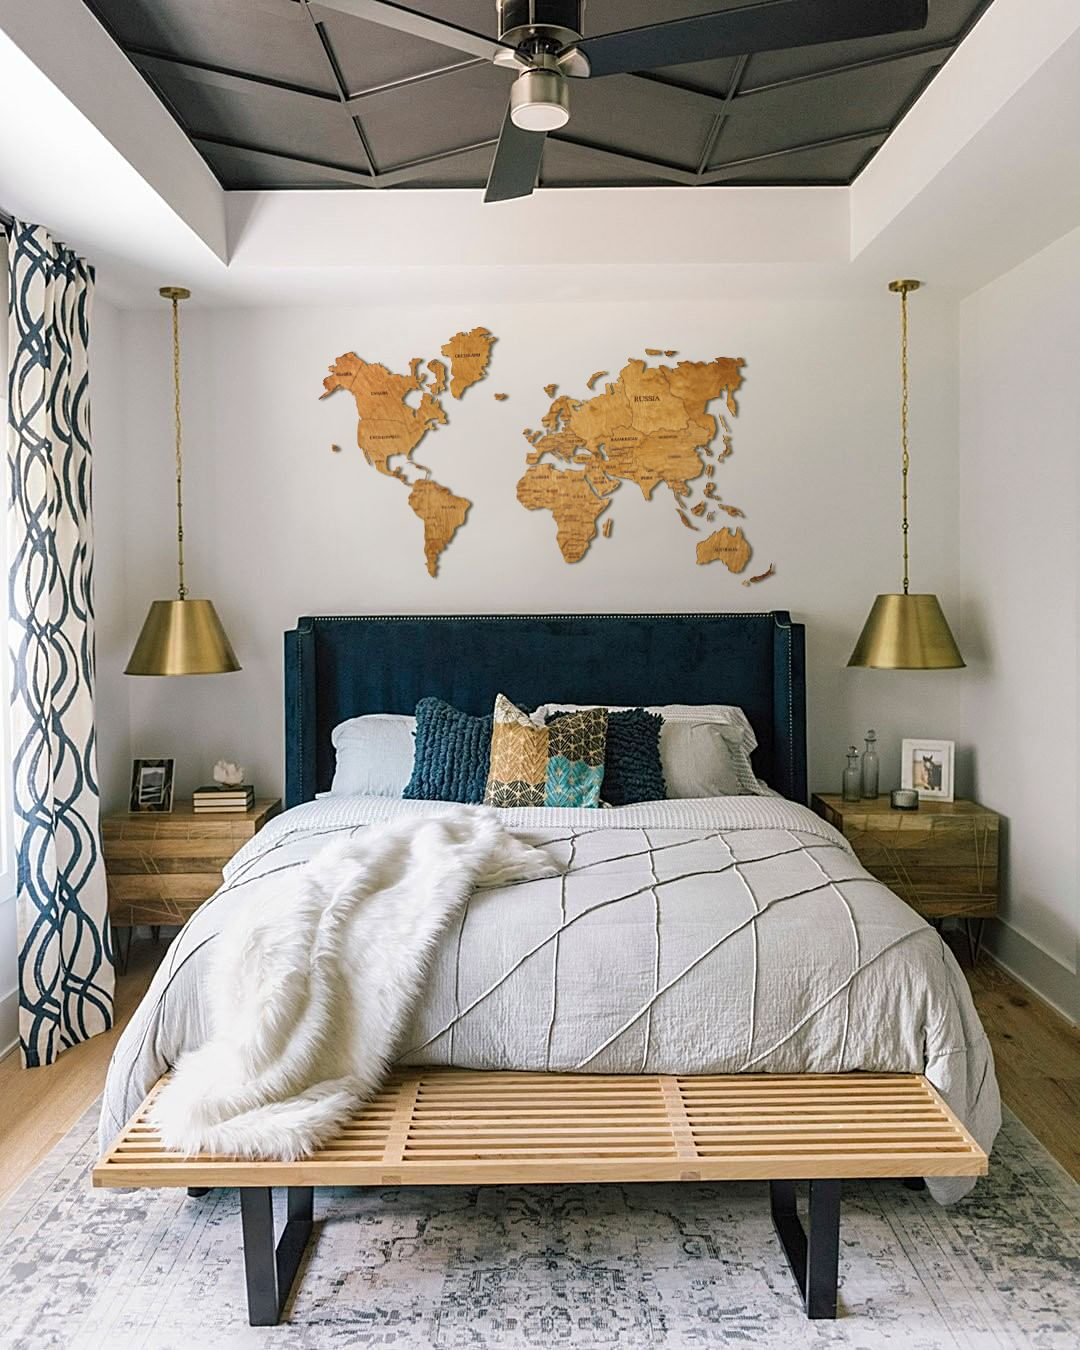 World Map Wall Art Travel Map World Map Push Pin Map Wall Art Wood Wall Art Wooden Map Farmhouse Decor Gift For Her Home Decor Bedroom Home Decor Bedroom Interior